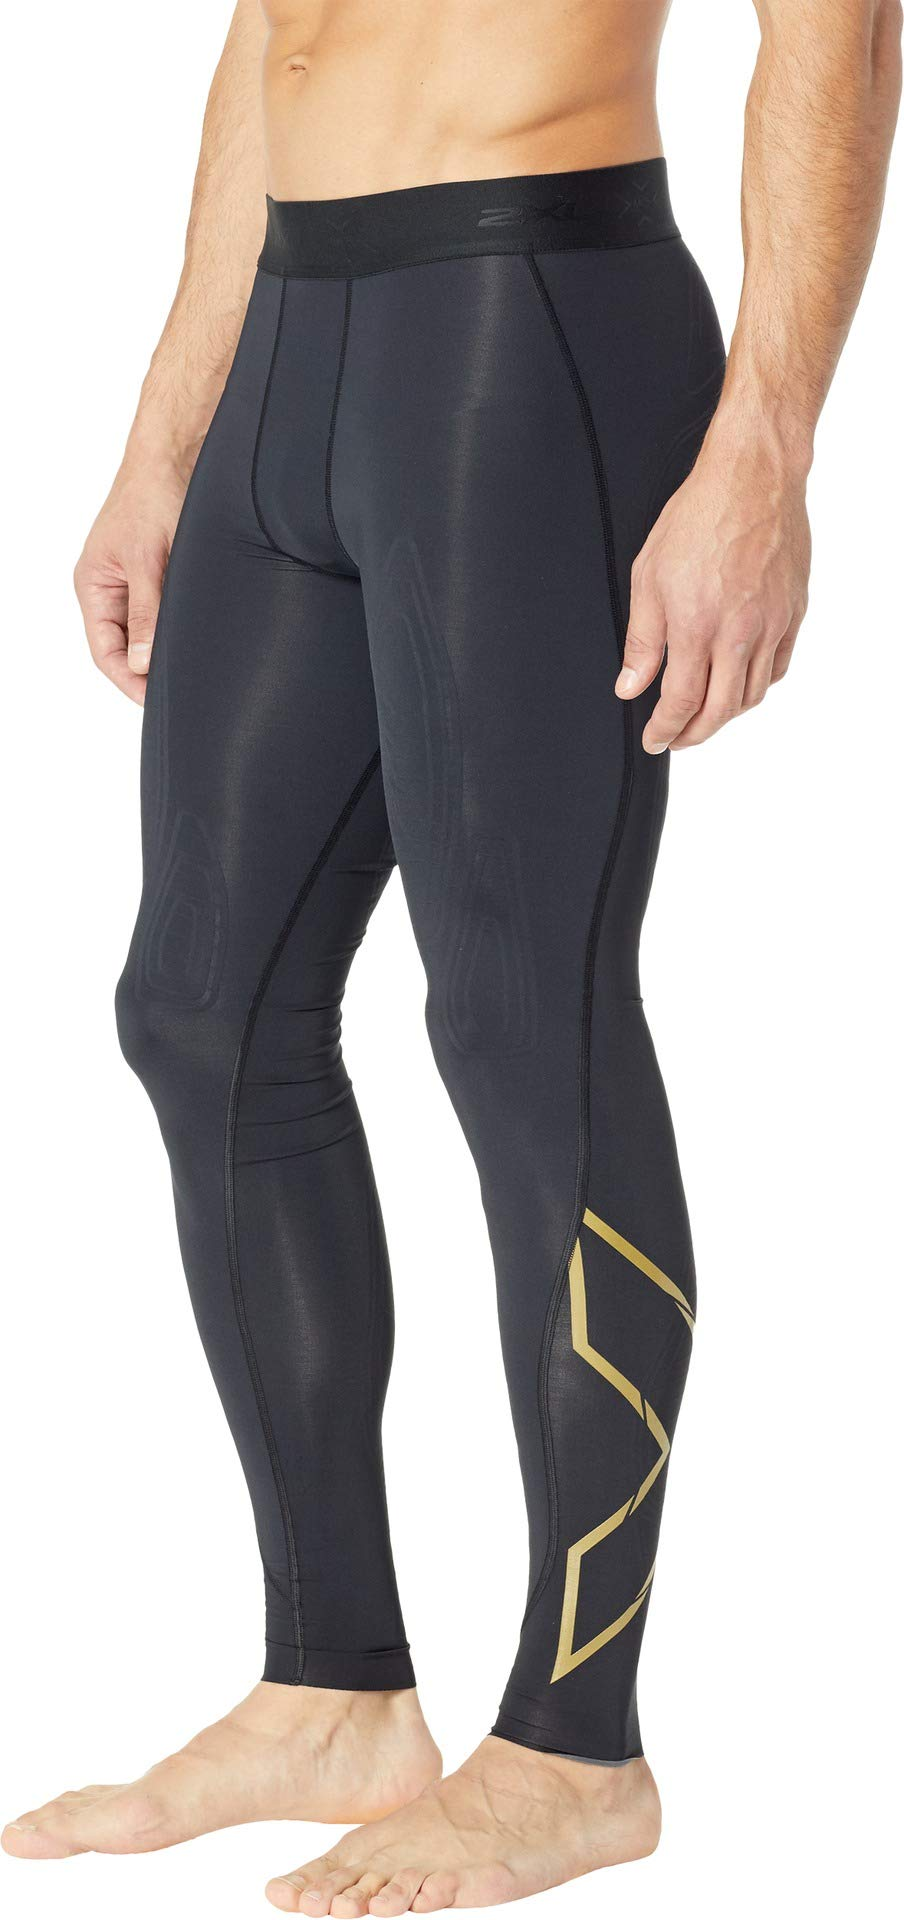 2XU Men's MCS Cross Training Compression Tights Black/Gold XX-Large R by 2XU (Image #2)